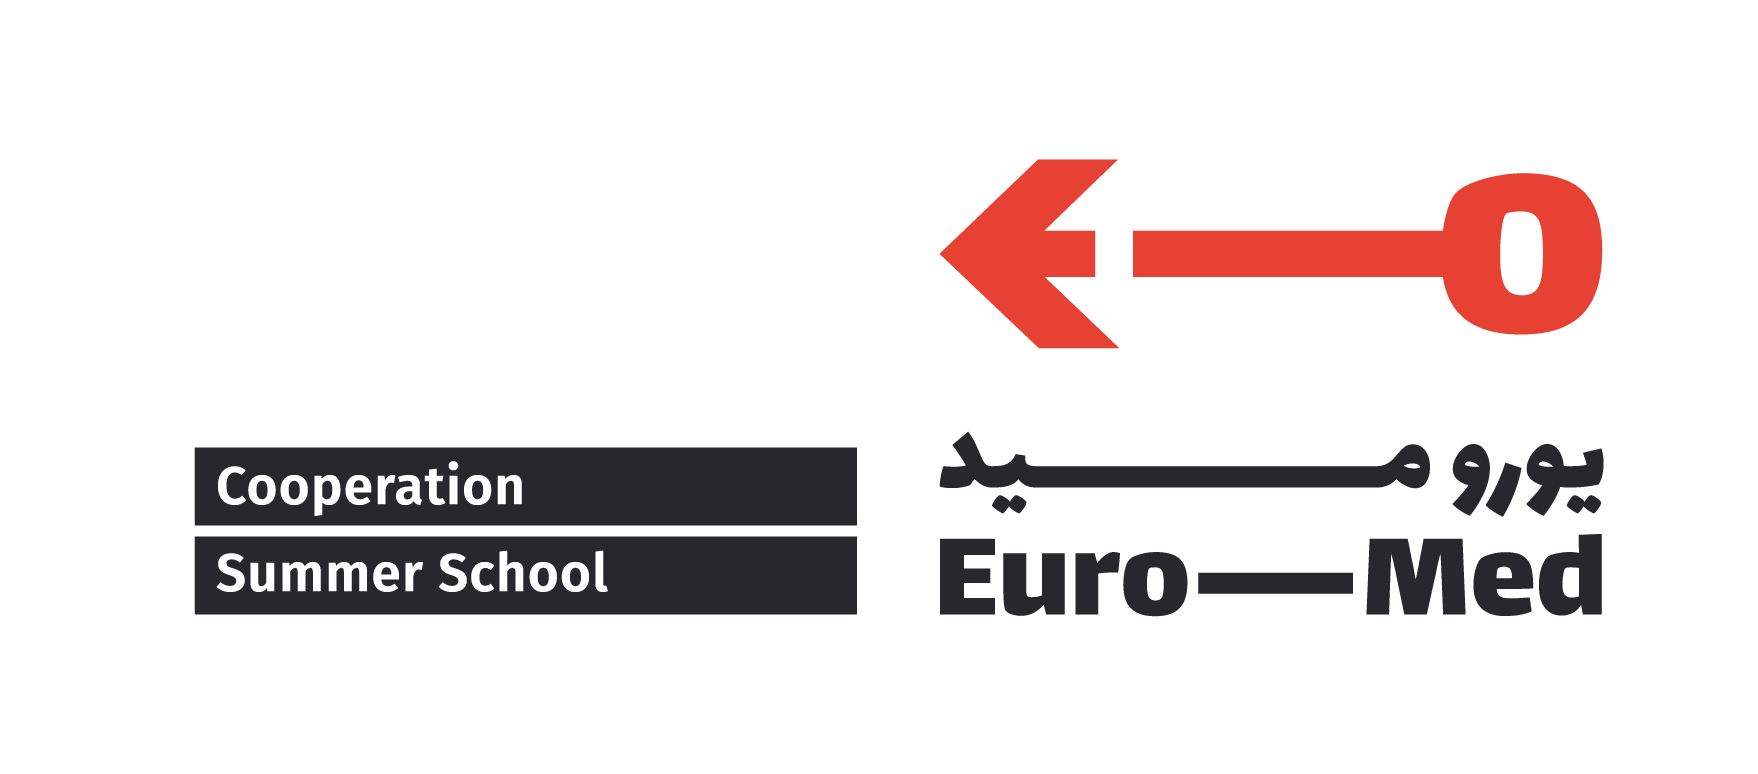 Euromed Summer School